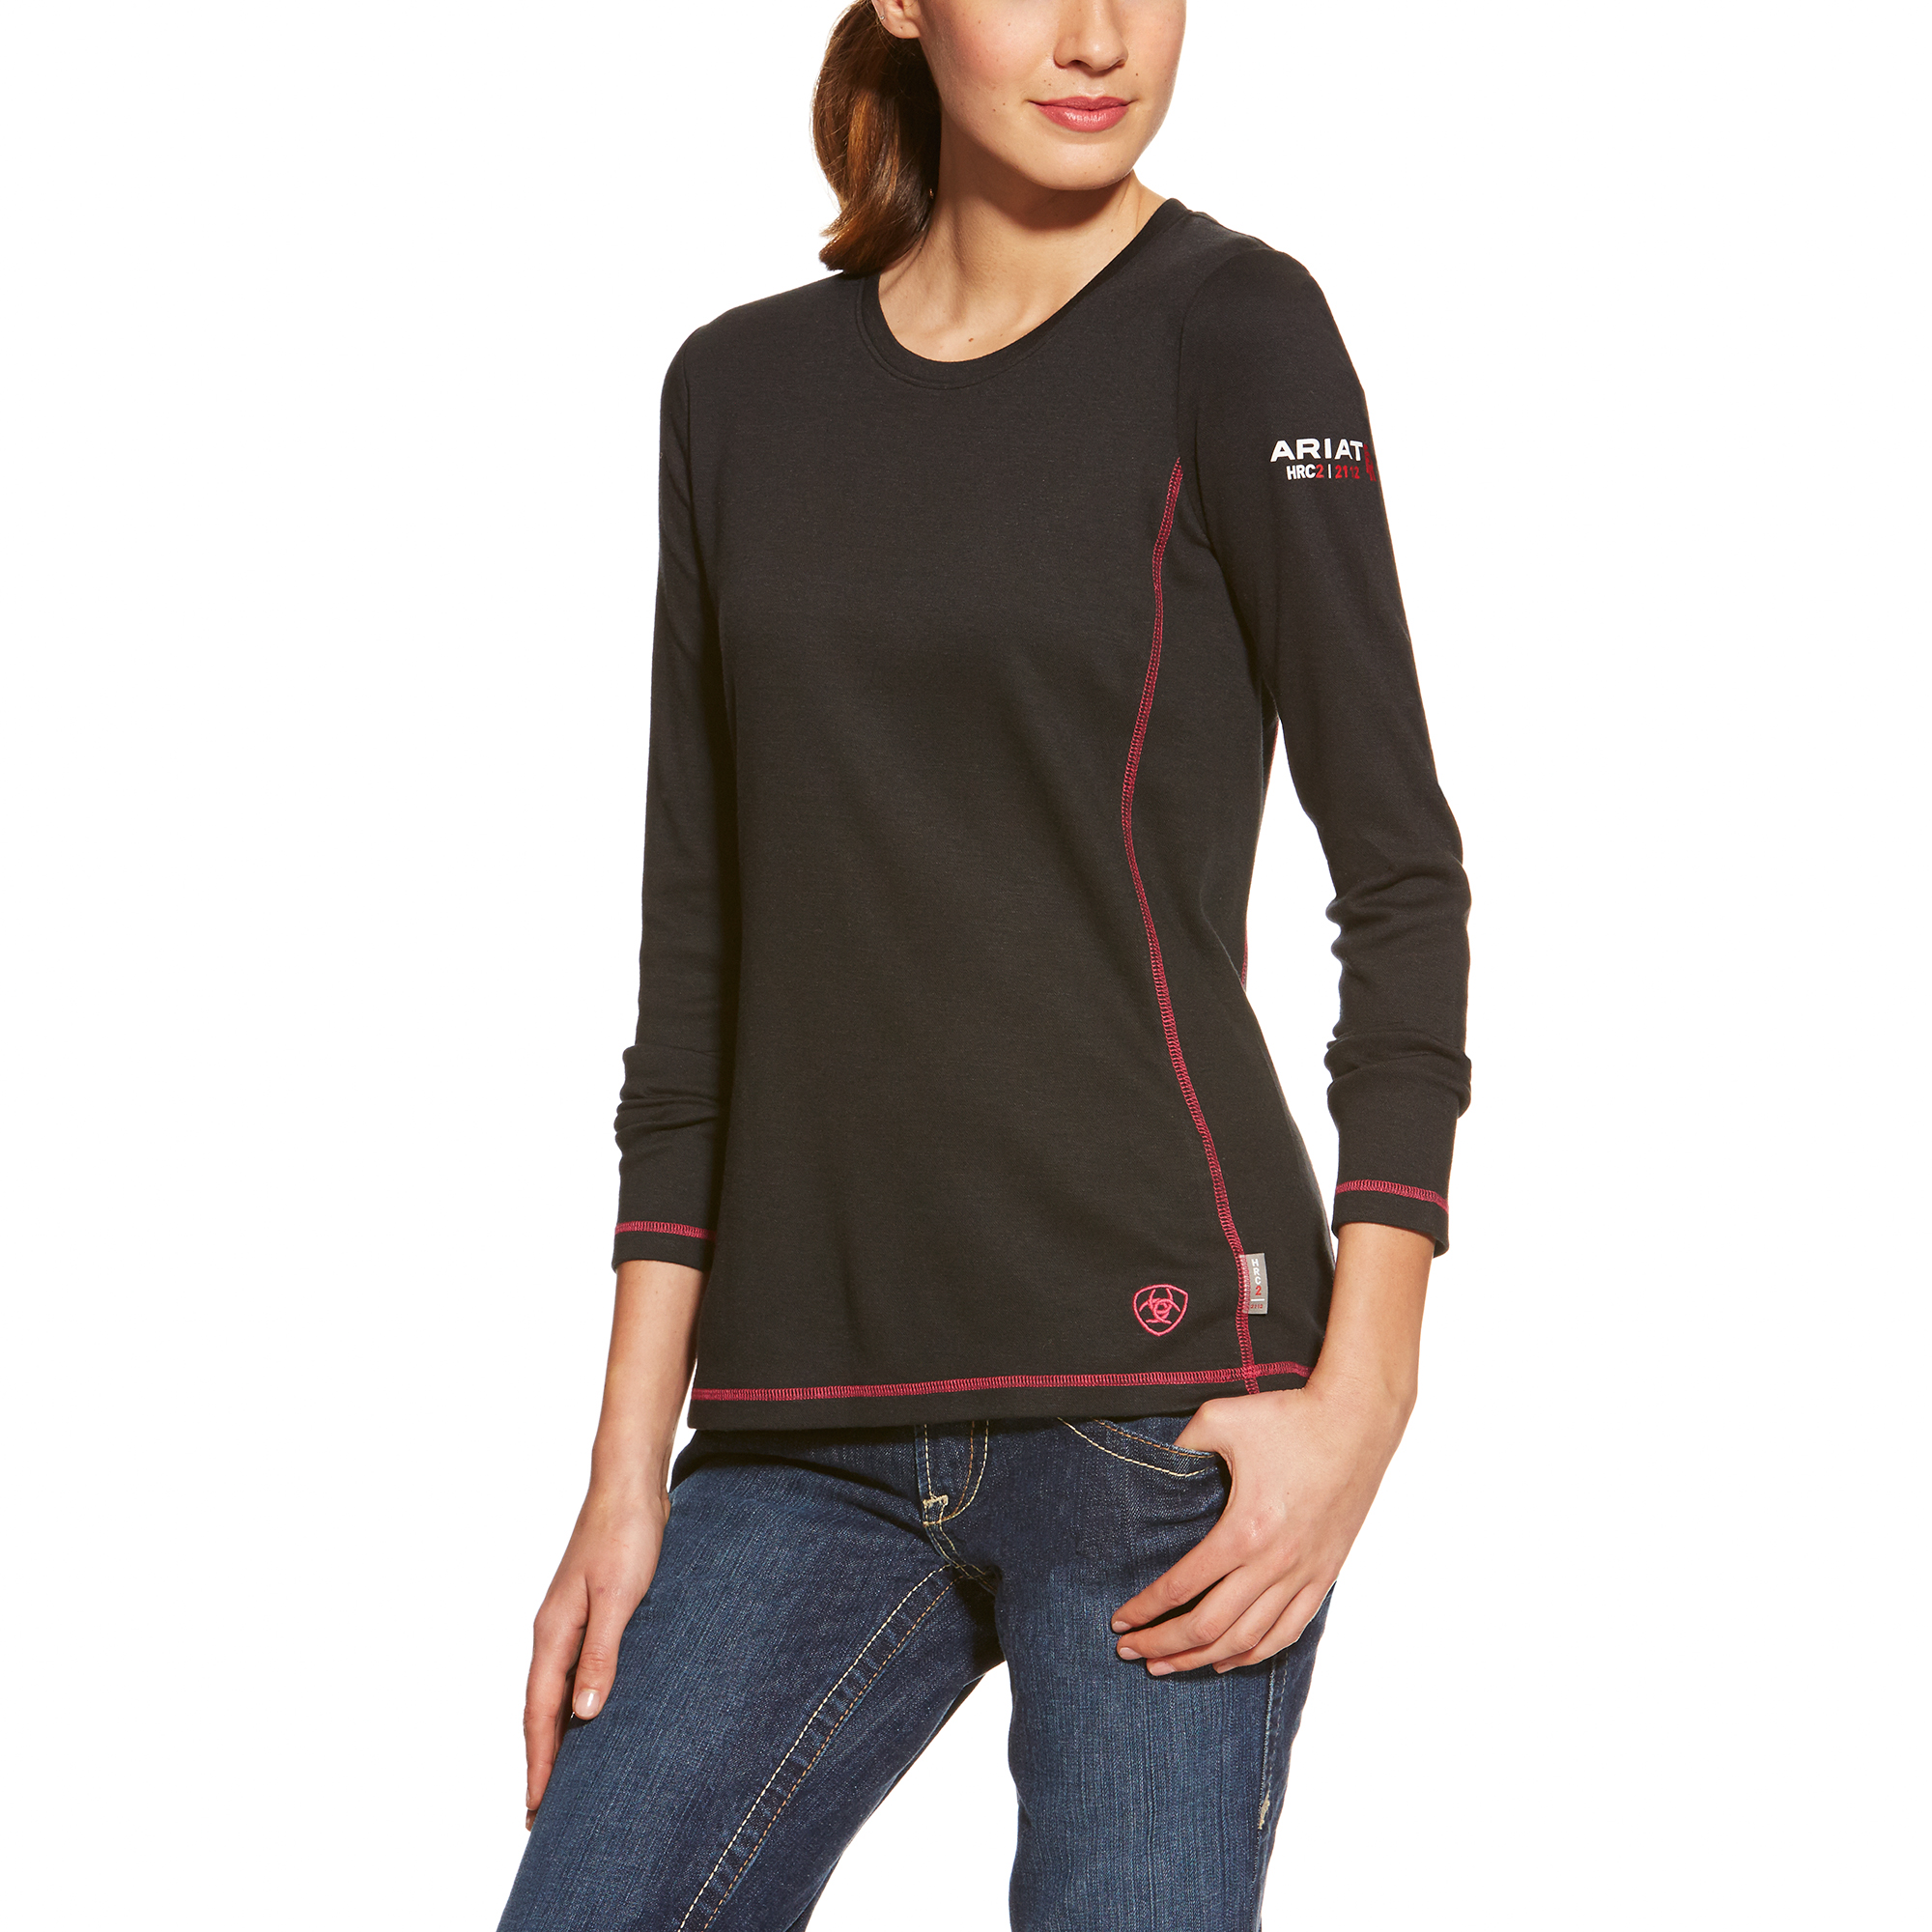 Ariat Women's FR Power Dry Top Black-